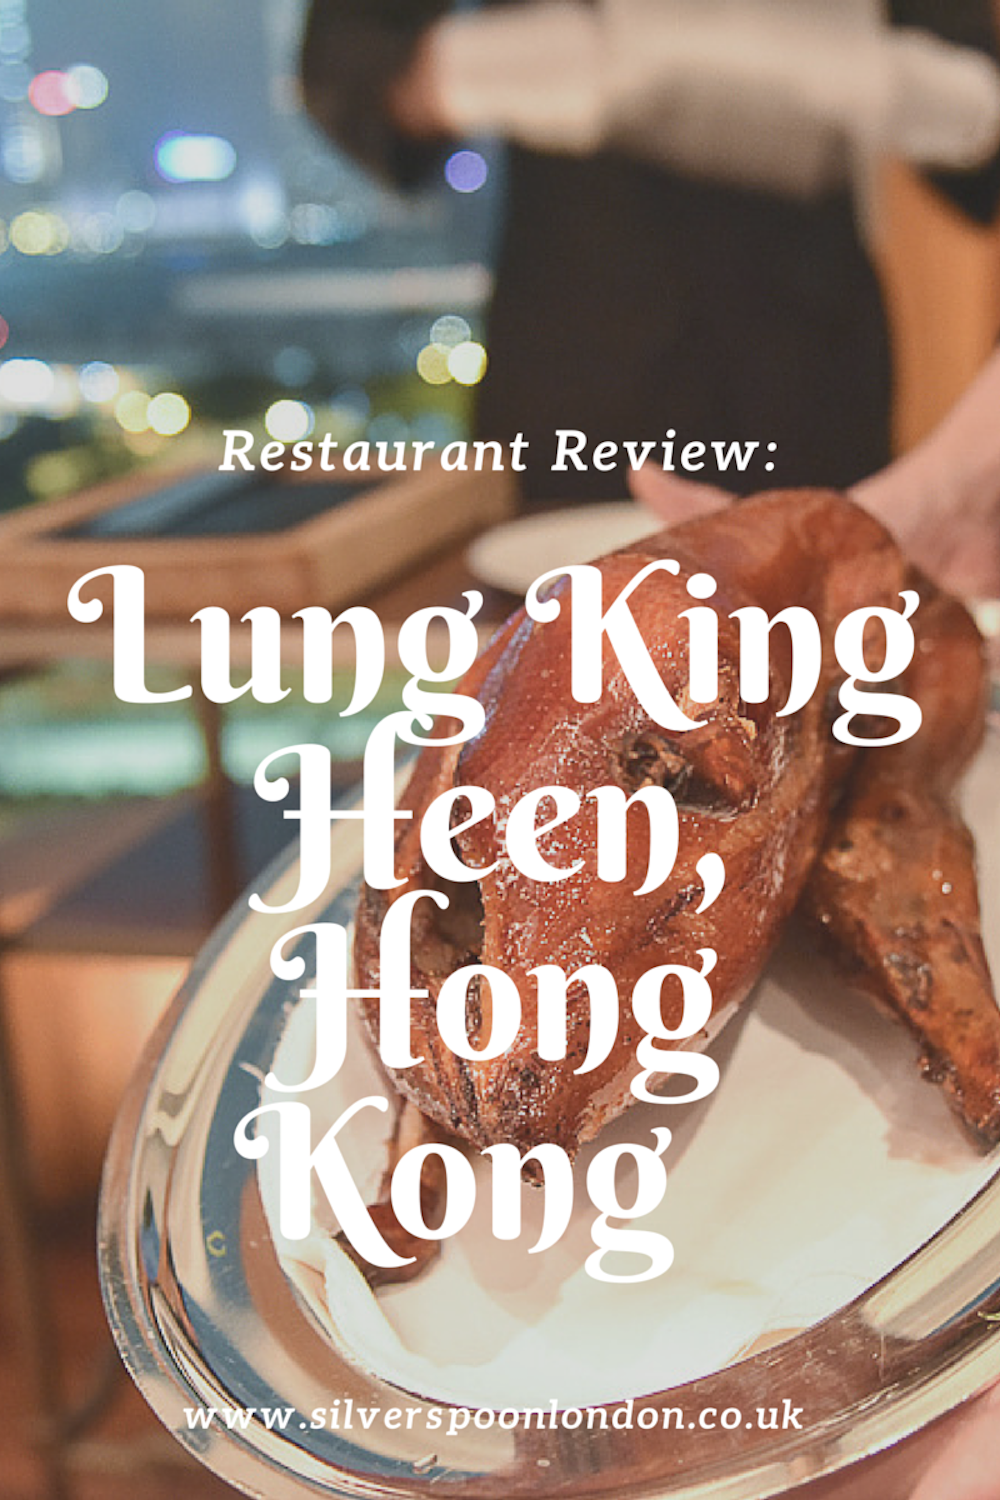 Restaurant Review: Lung King Heen